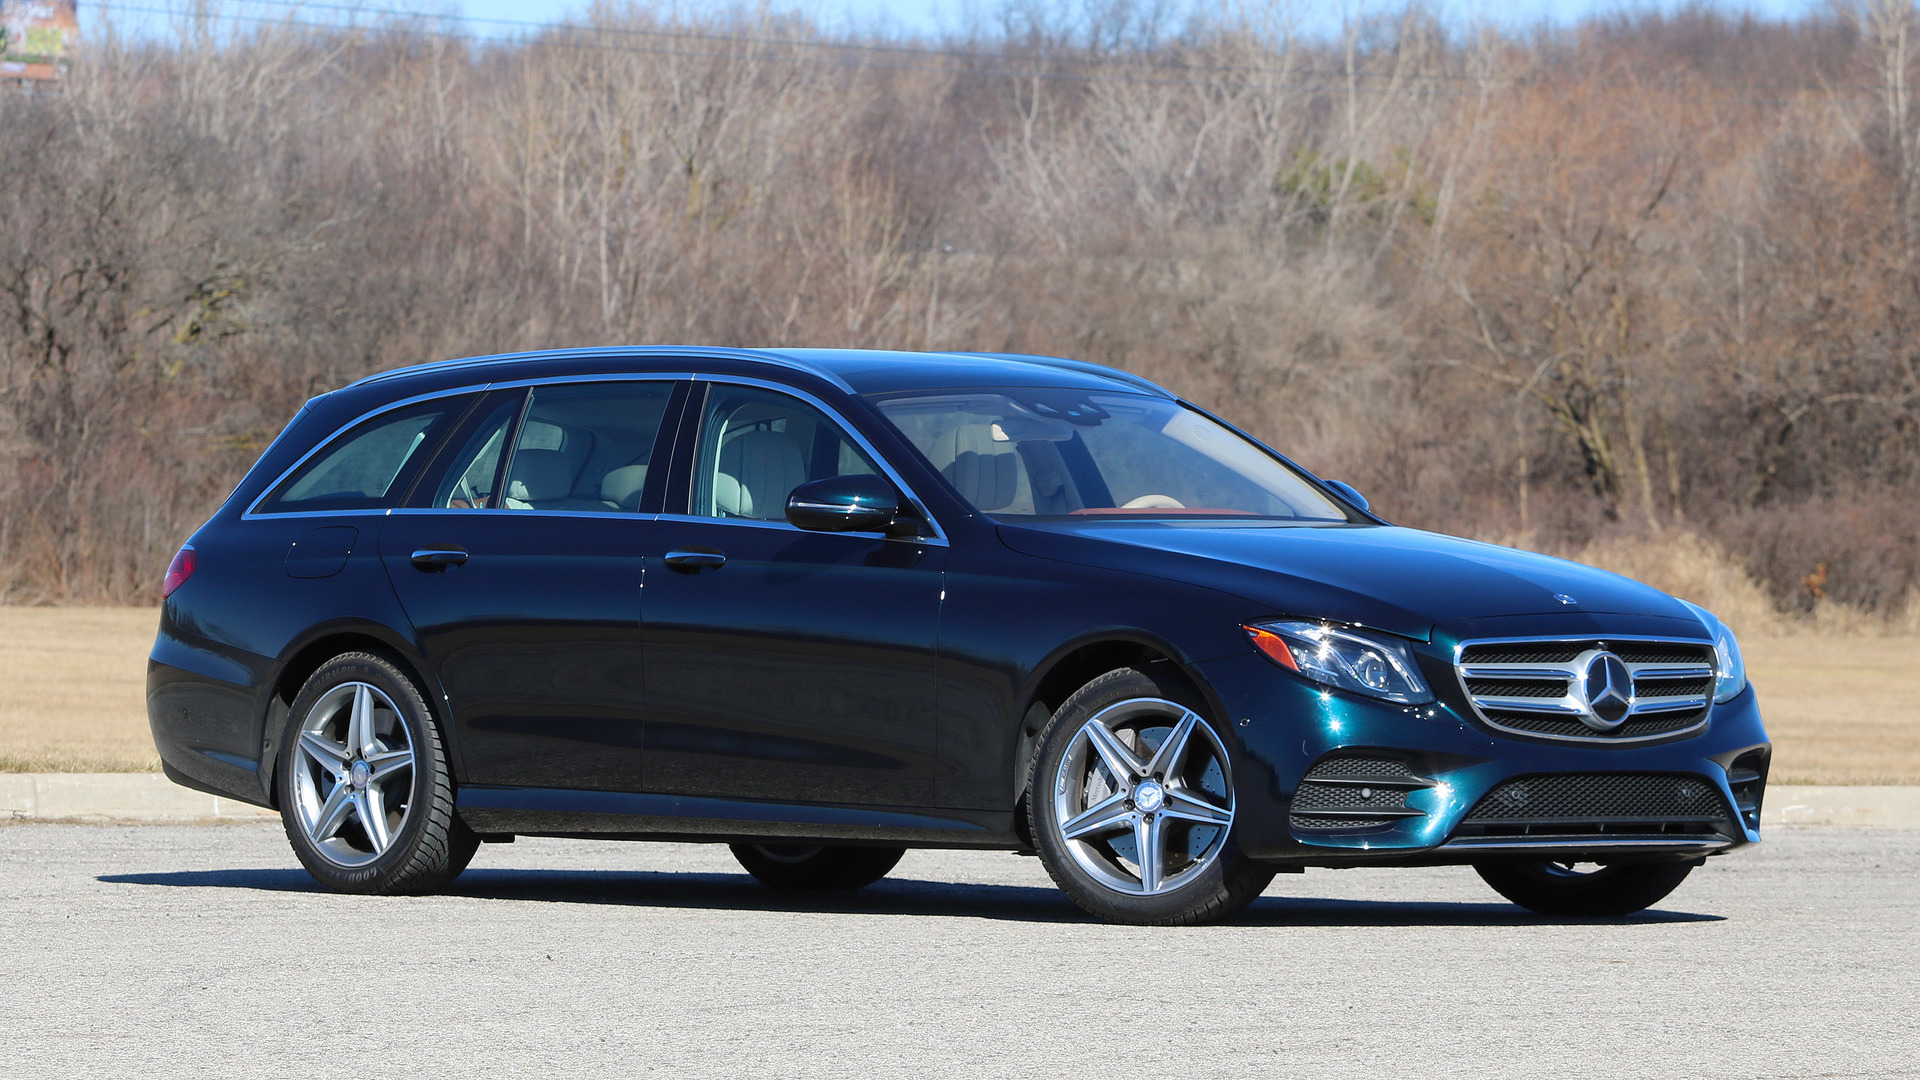 2017 Mercedes Benz E400 Wagon Review Cure For The Common Crossover